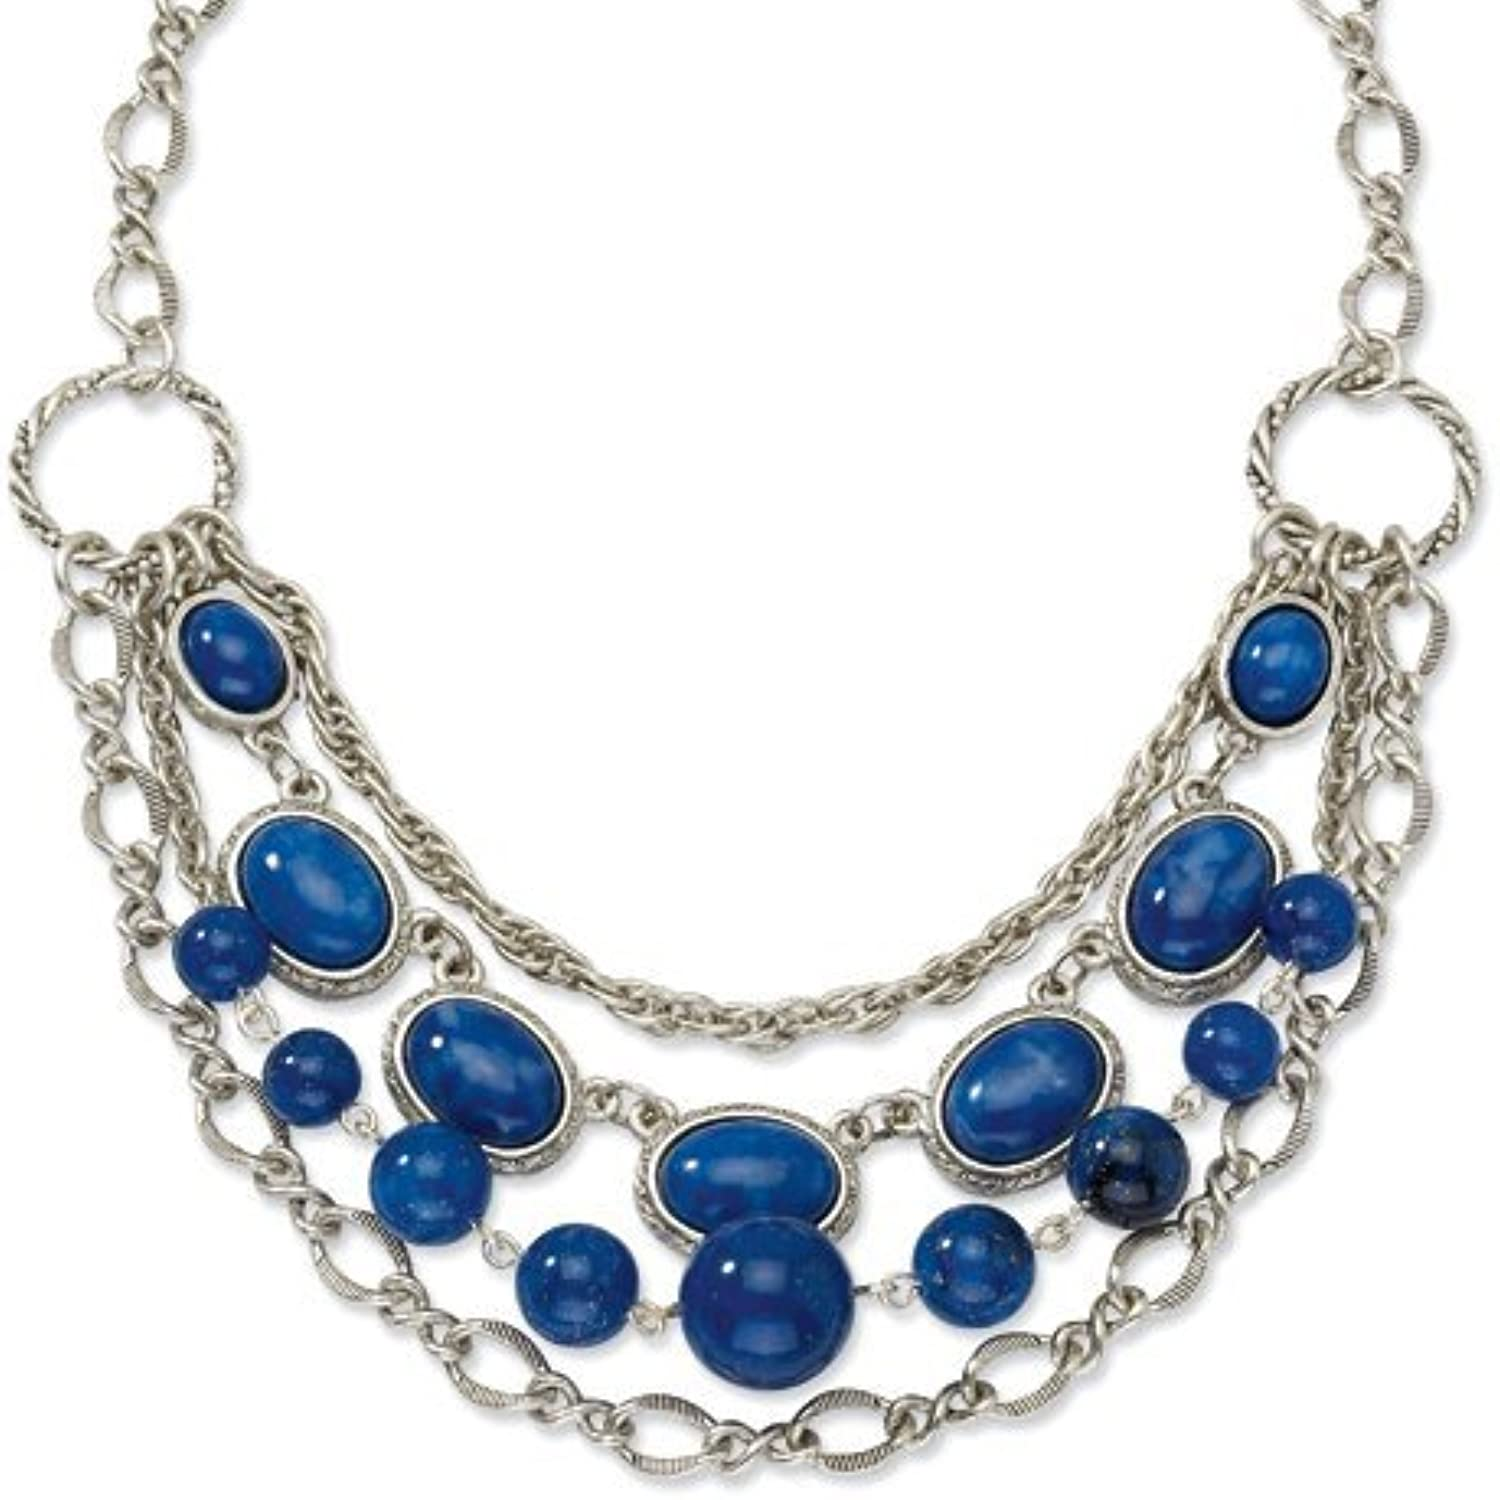 1928 Silgreenone bluee Glass Beads 16in w ext Necklace